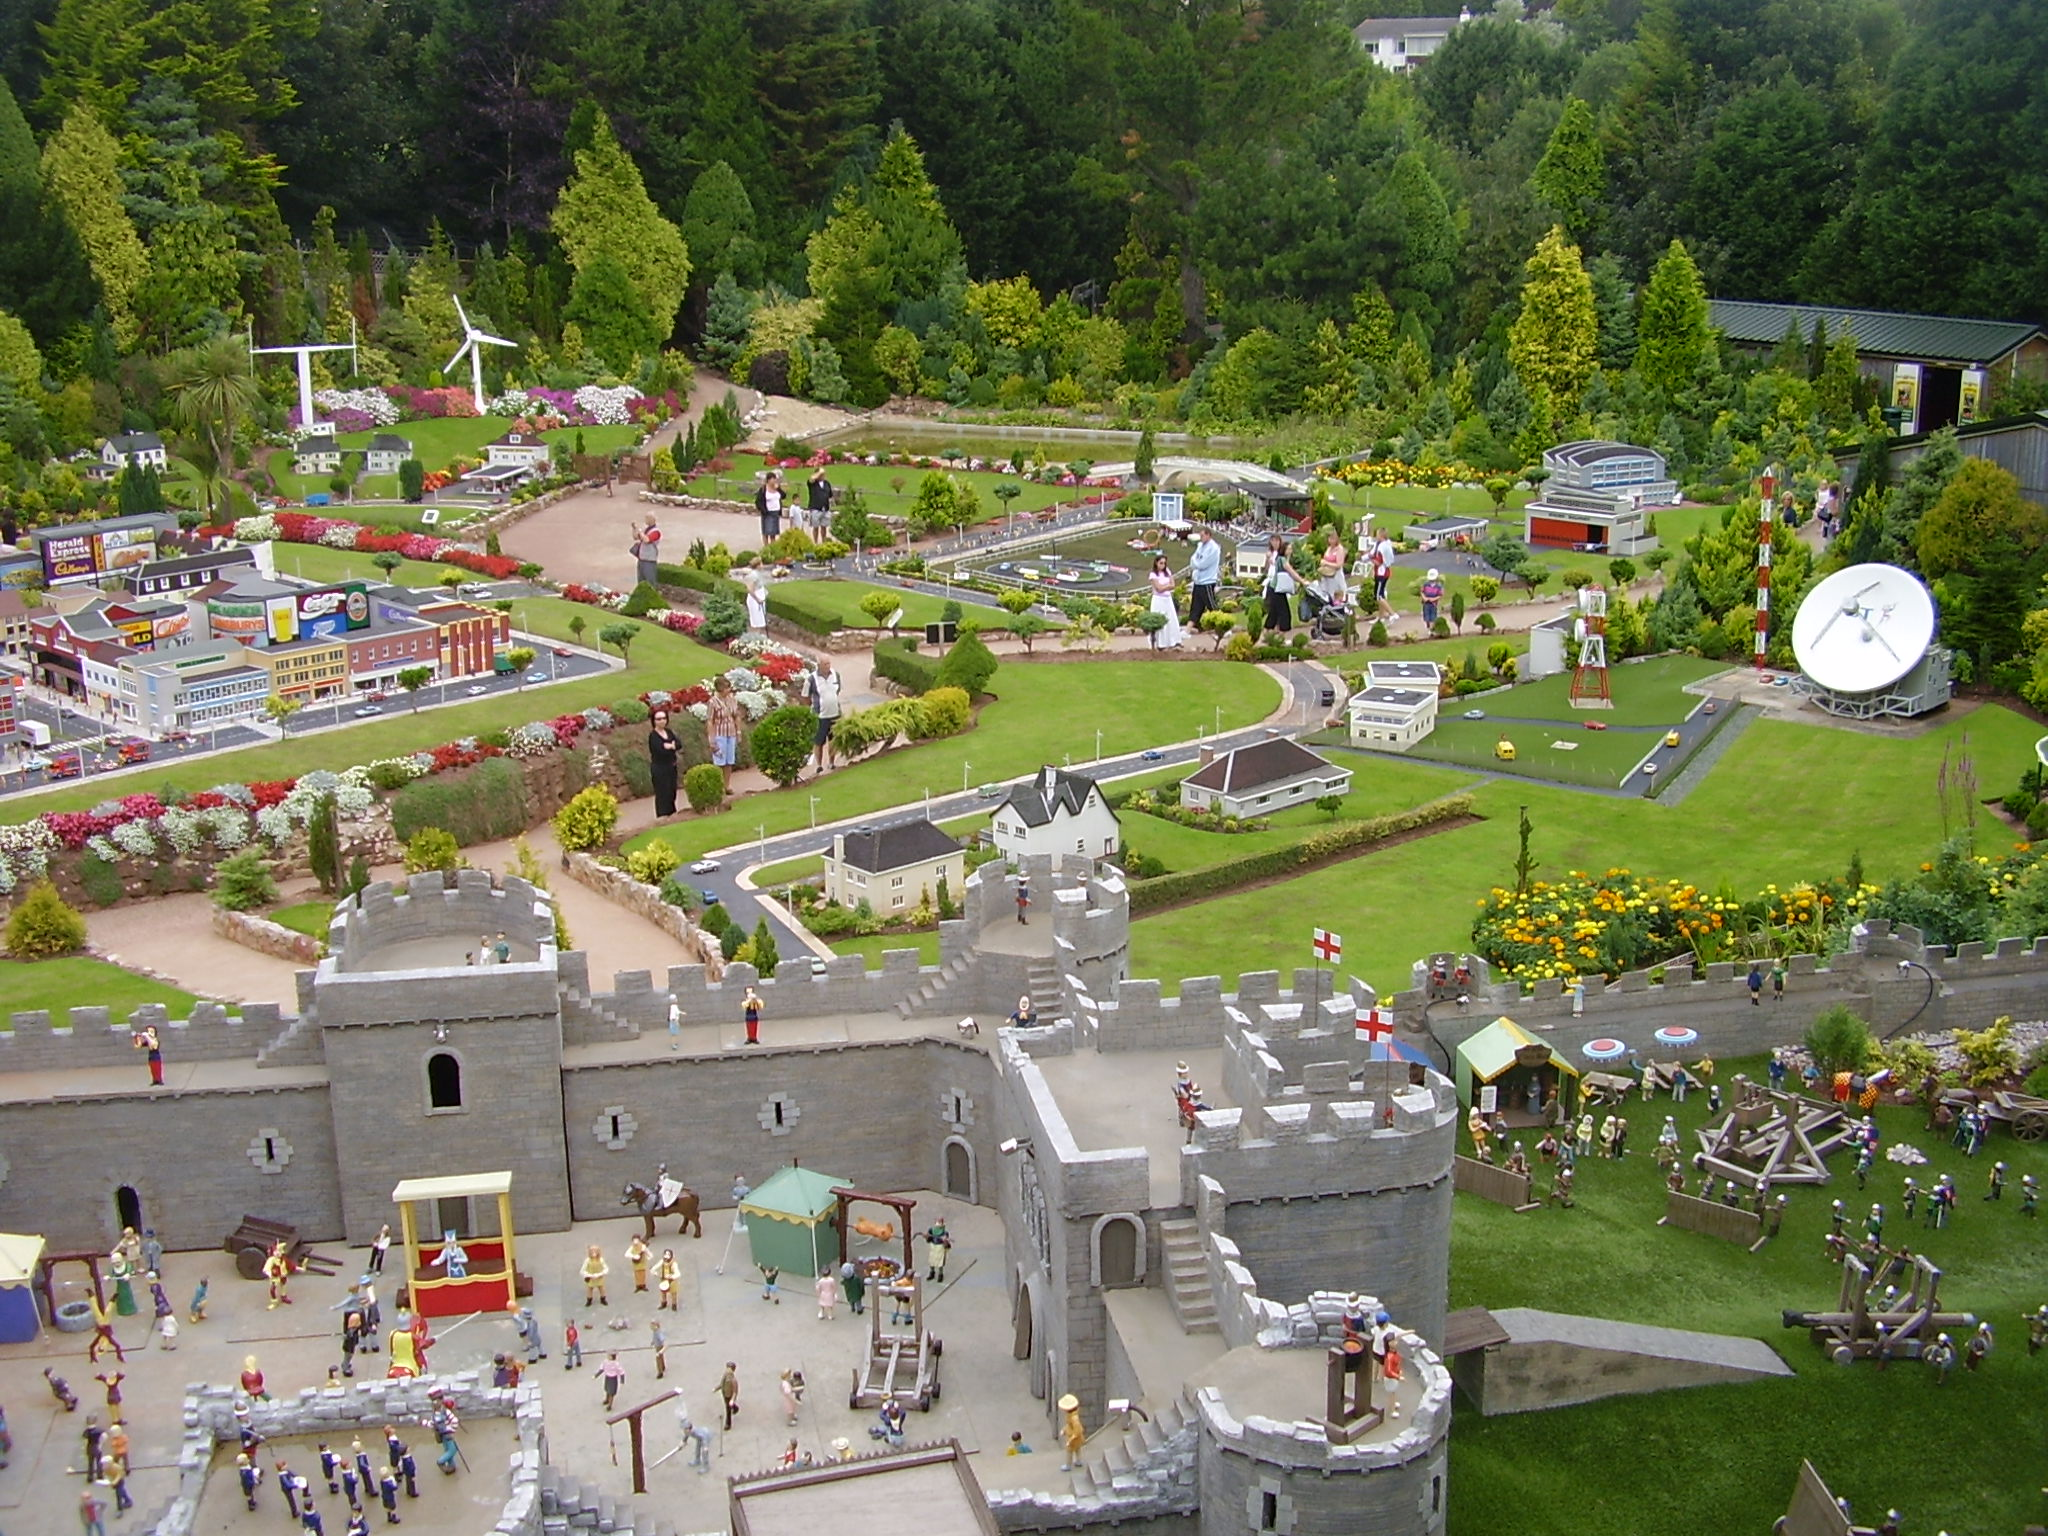 File:Babacombe Model Village Overview.jpg - Wikimedia Commons